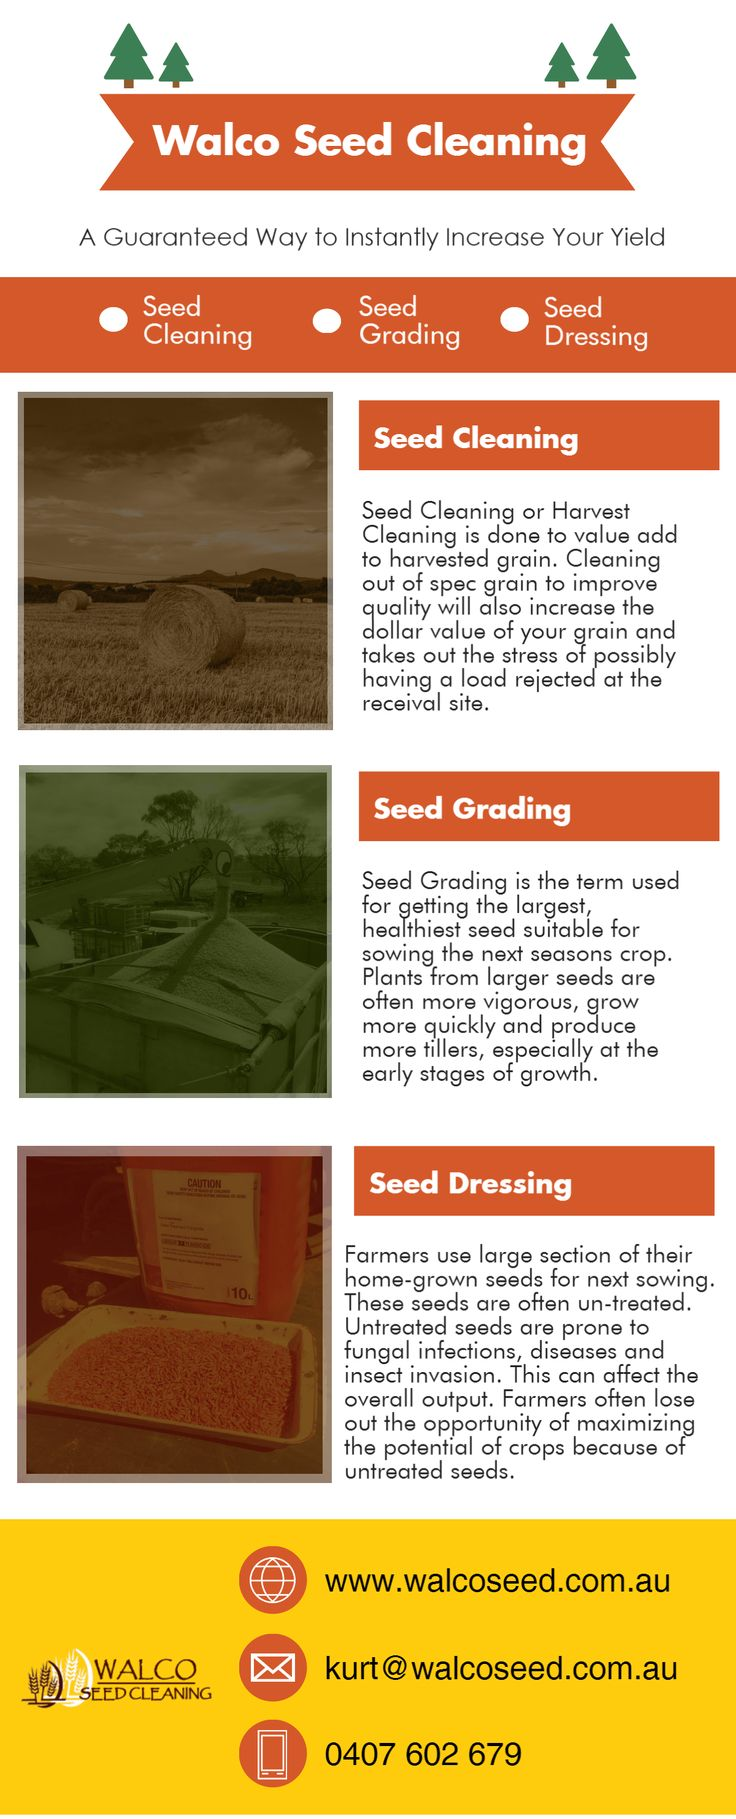 Seed cleaning is one of the most vital functions of farming. Many people wonder if they can skip the process of cleaning the seed and start sorting them instead. It is ideal that you undertake the process of cleaning the seed for better results. You can always hire a seed cleaning agency and relieve yourself of any unnecessary stress associated with post harvesting activities. Walco Seed cleaning service is one of the best seed cleaning services in Australia.